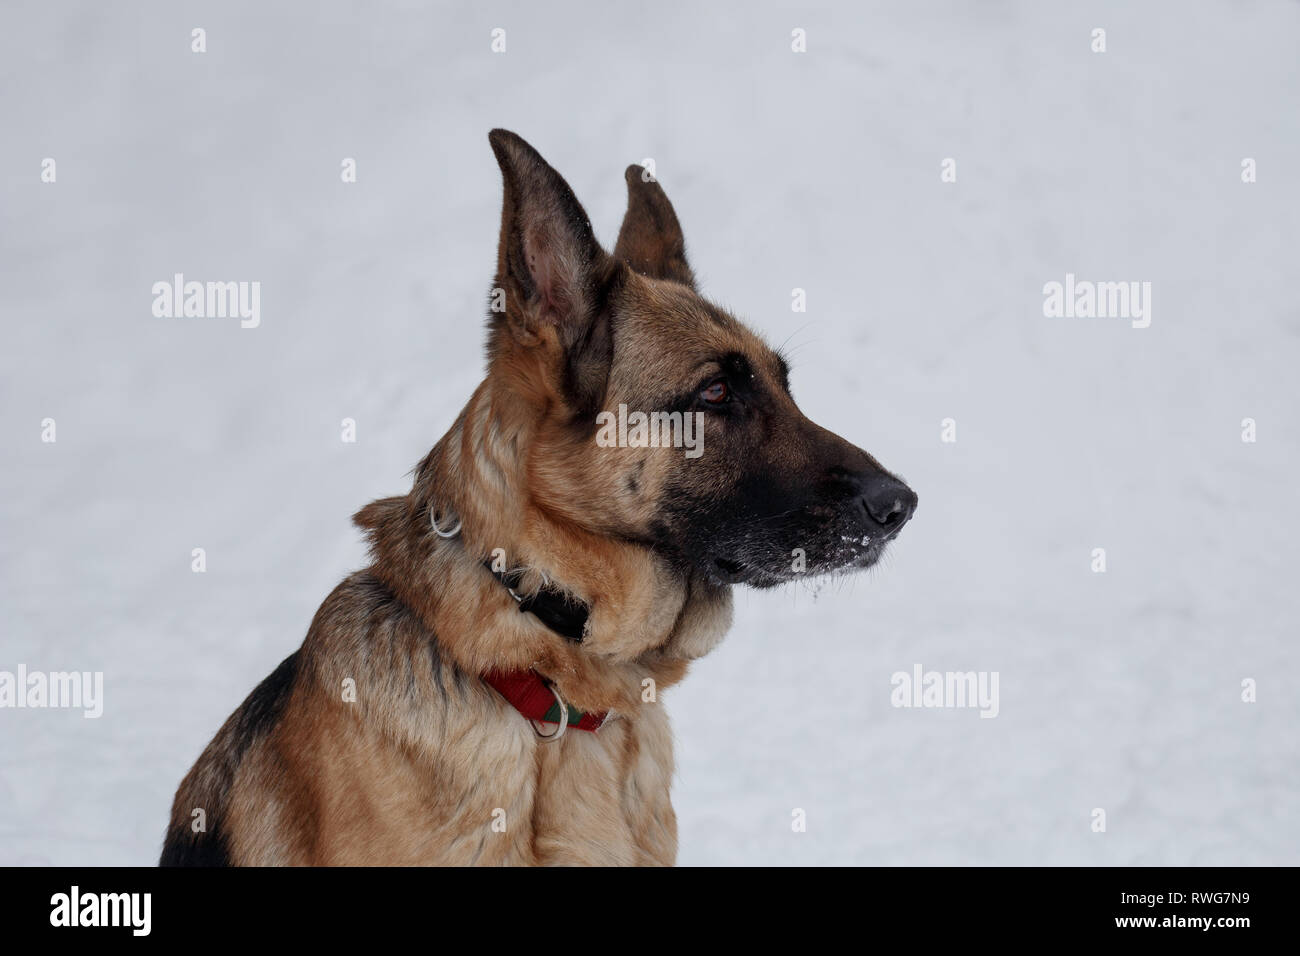 German shepherd with black mask is sitting on the white snow. Close up. Pet animals. Purebred dog. - Stock Image